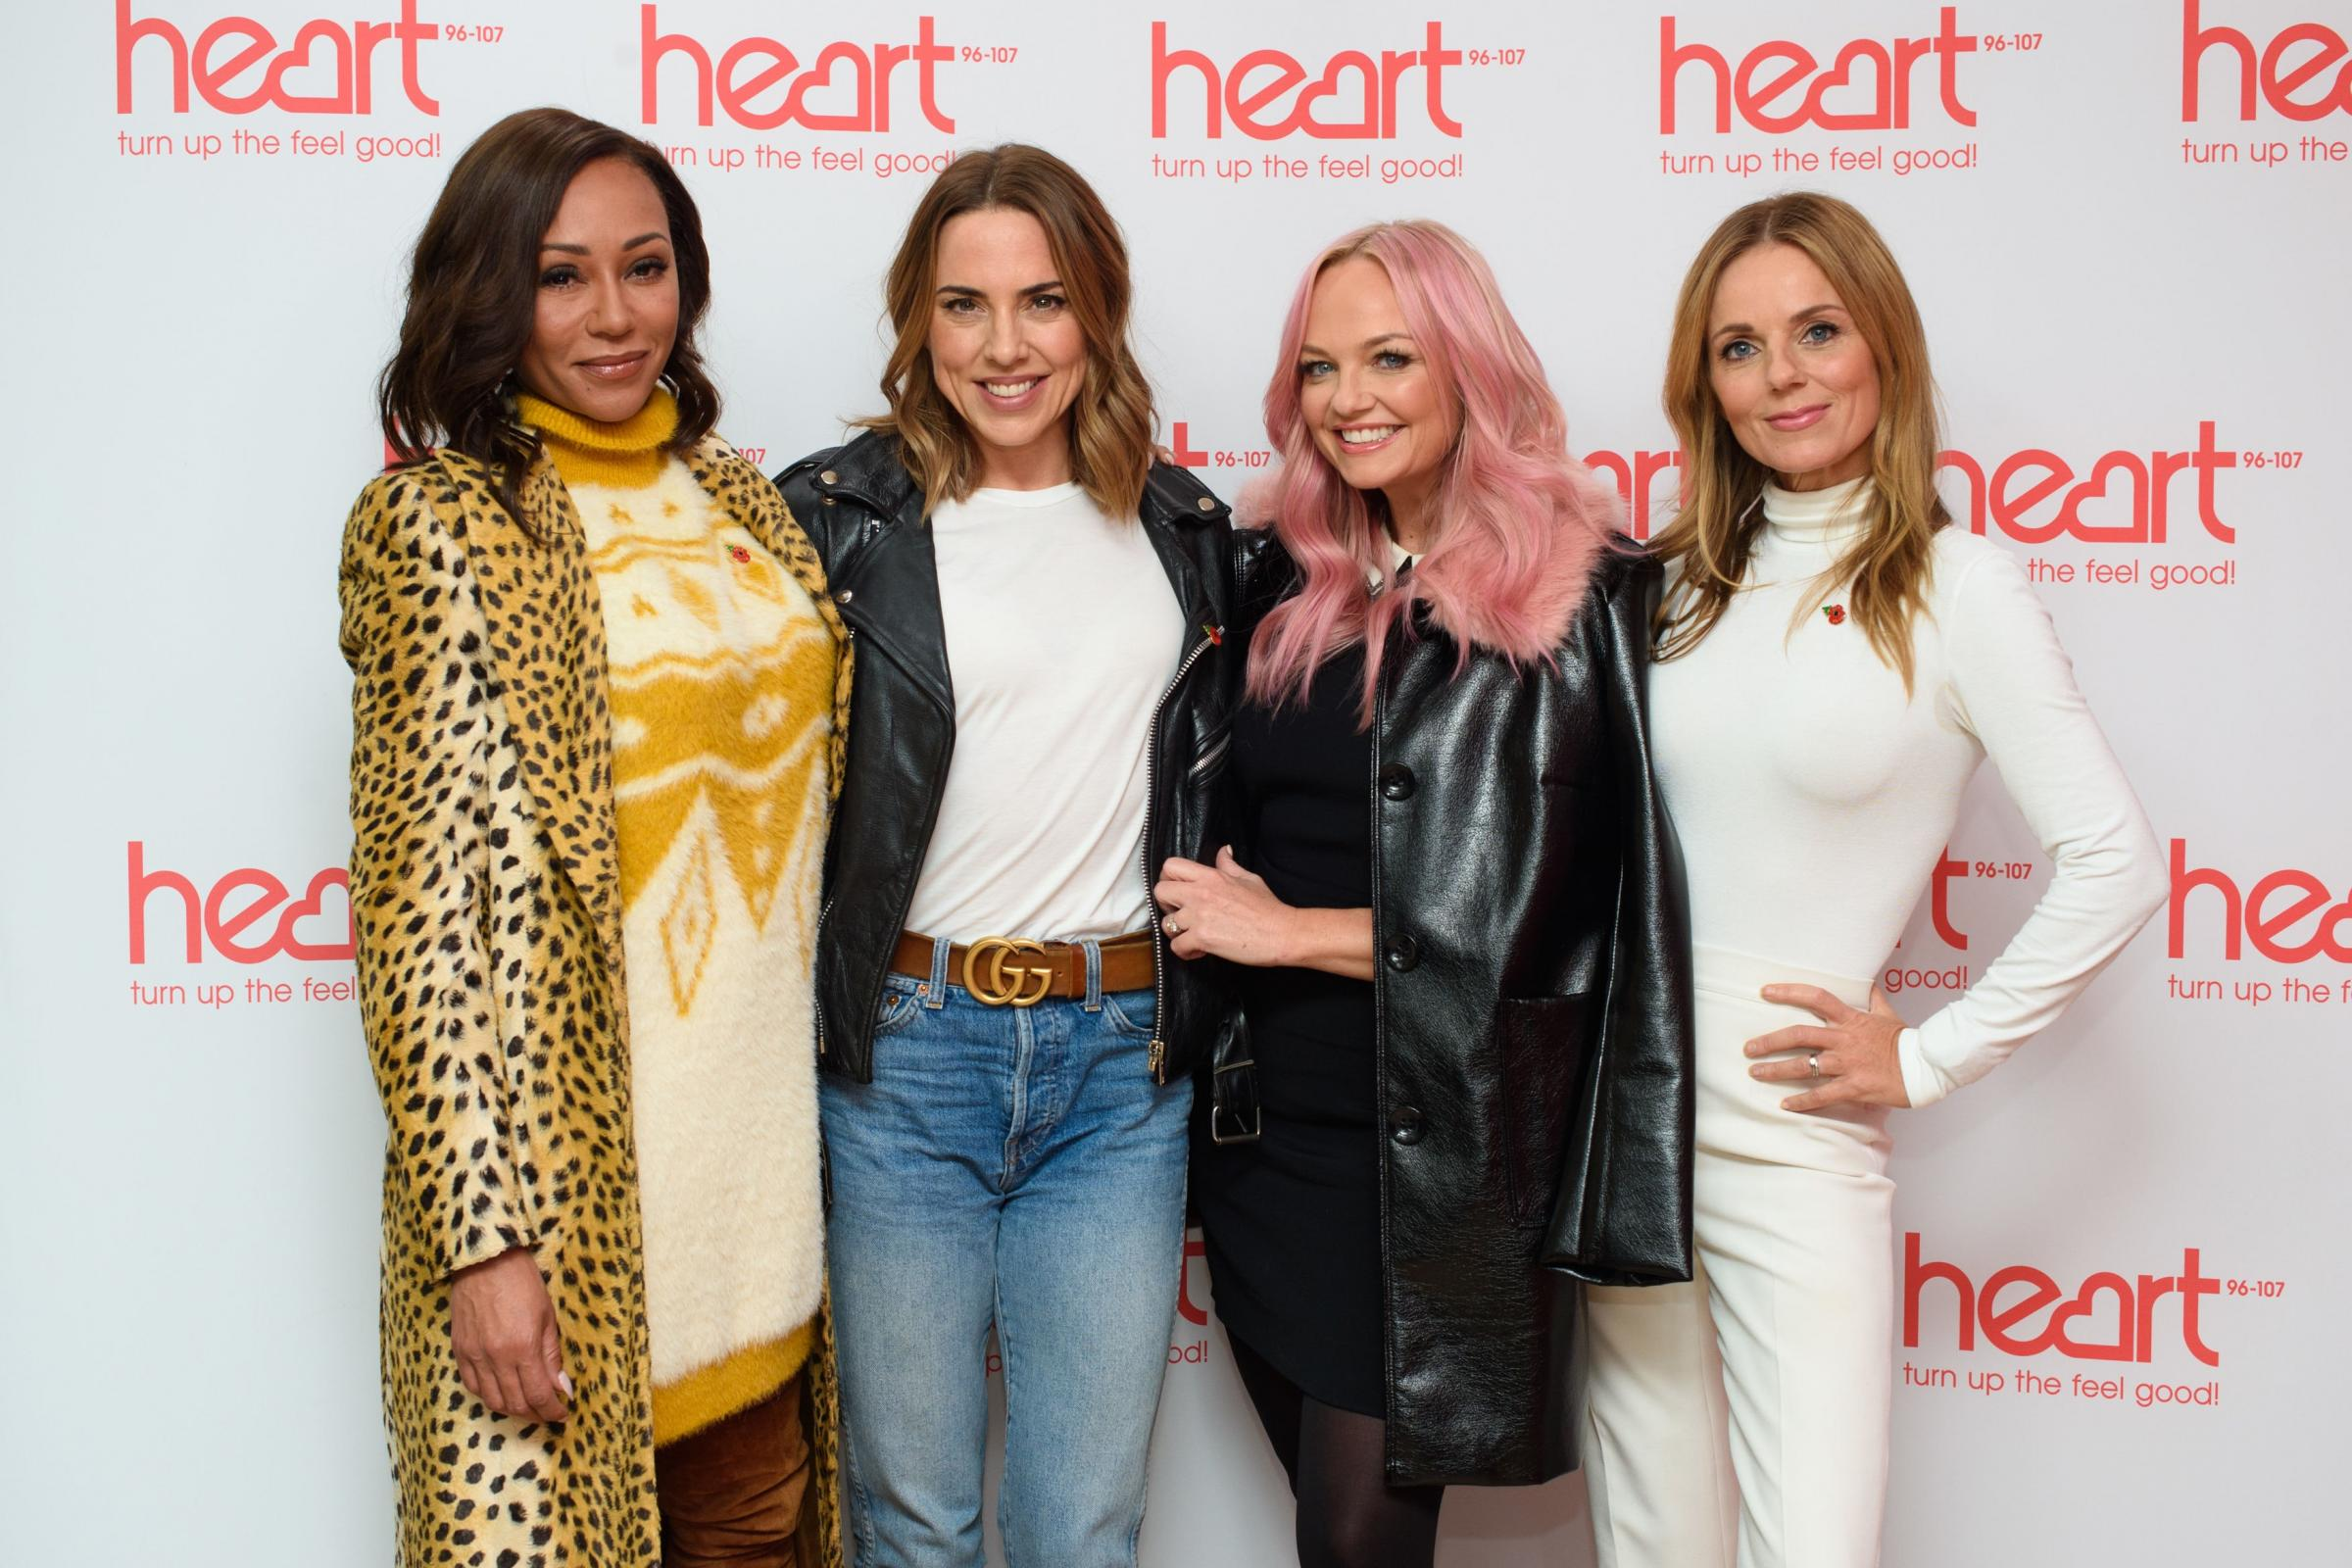 Spice Girls fans hailed by group after selling out nine stadium shows